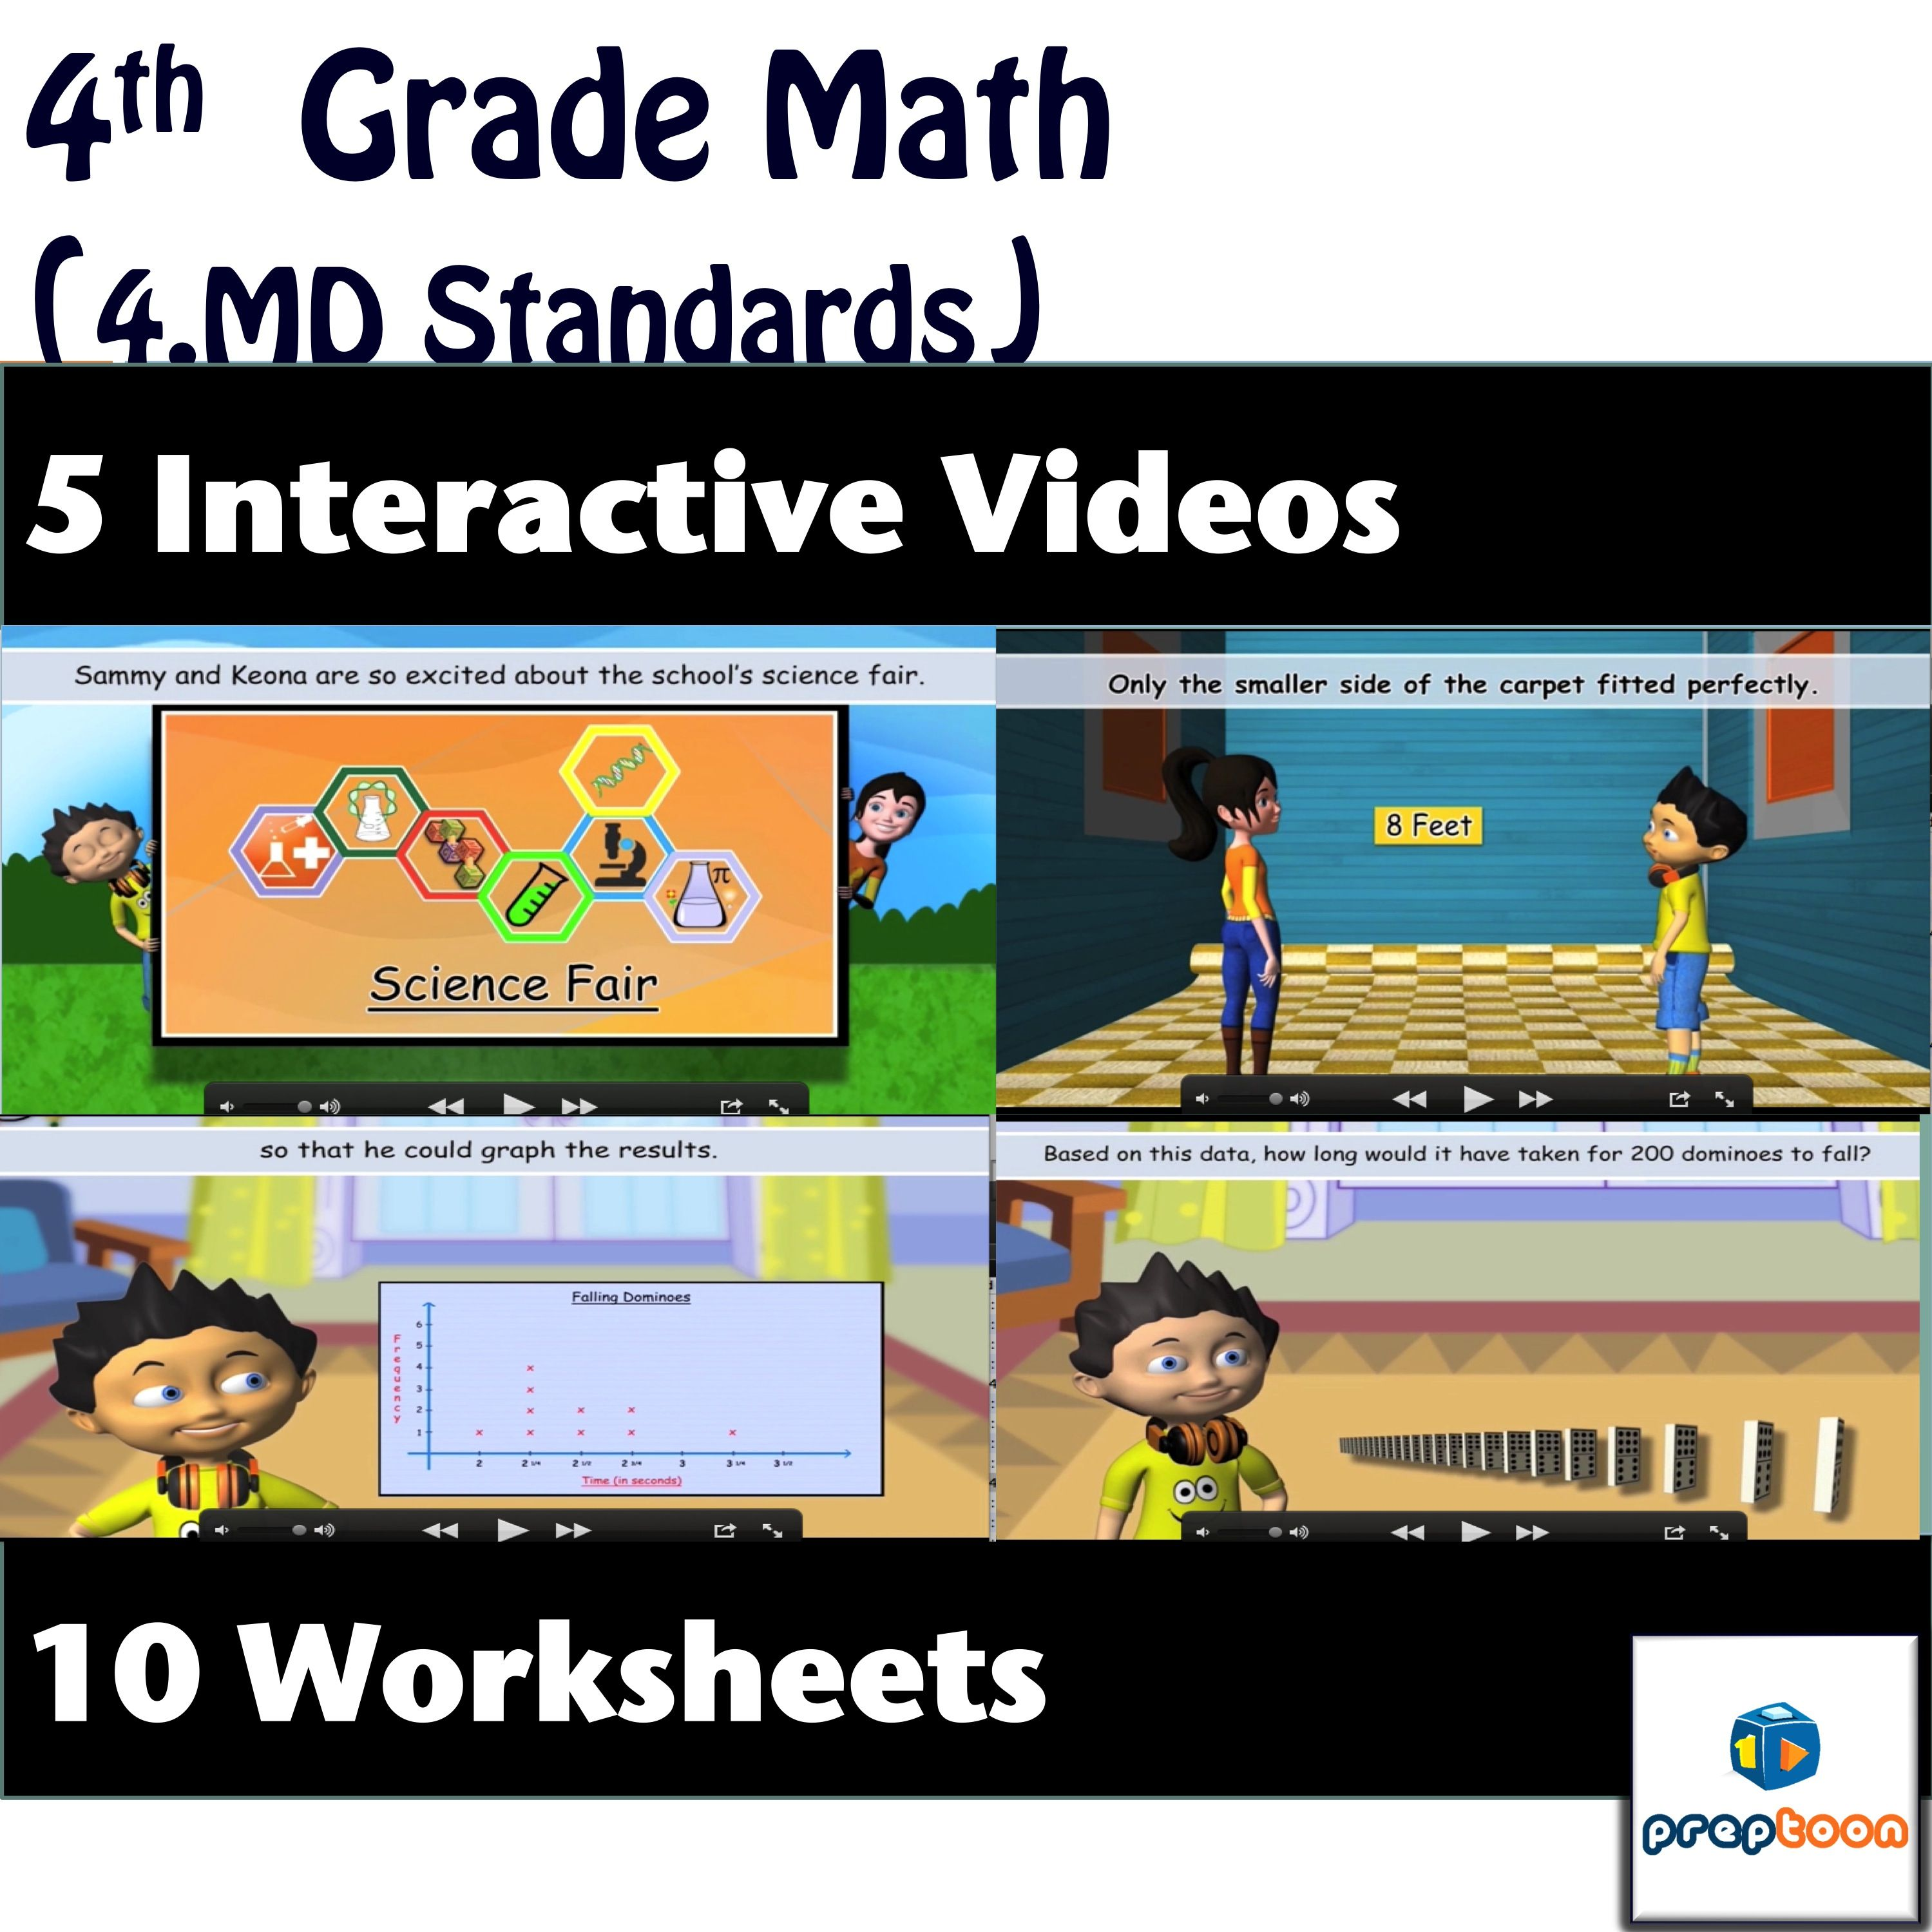 Common Core Math Measurement And Data